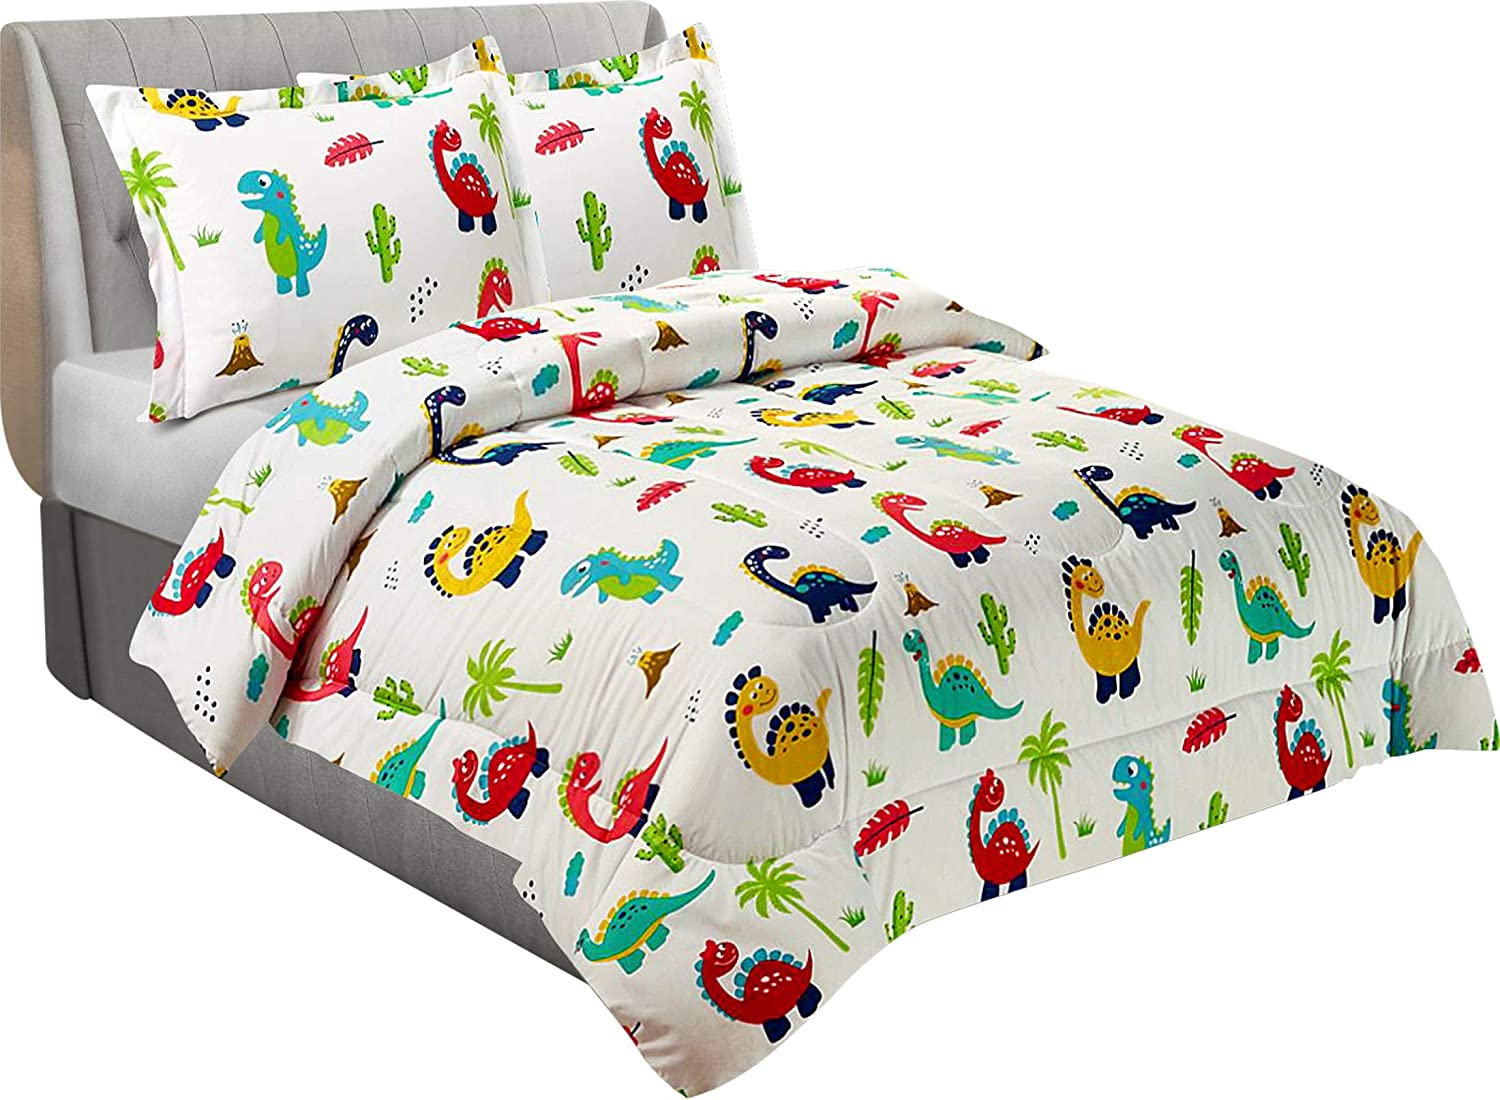 Utopia Bedding All Season Dinosaur Comforter Set with 2 Pillow Cases - 3 Piece Brushed Microfiber Kids Bedding Set for Boys/Girls - Soft and Comfortable - Machine Washable - White -(Twin/Twin XL)